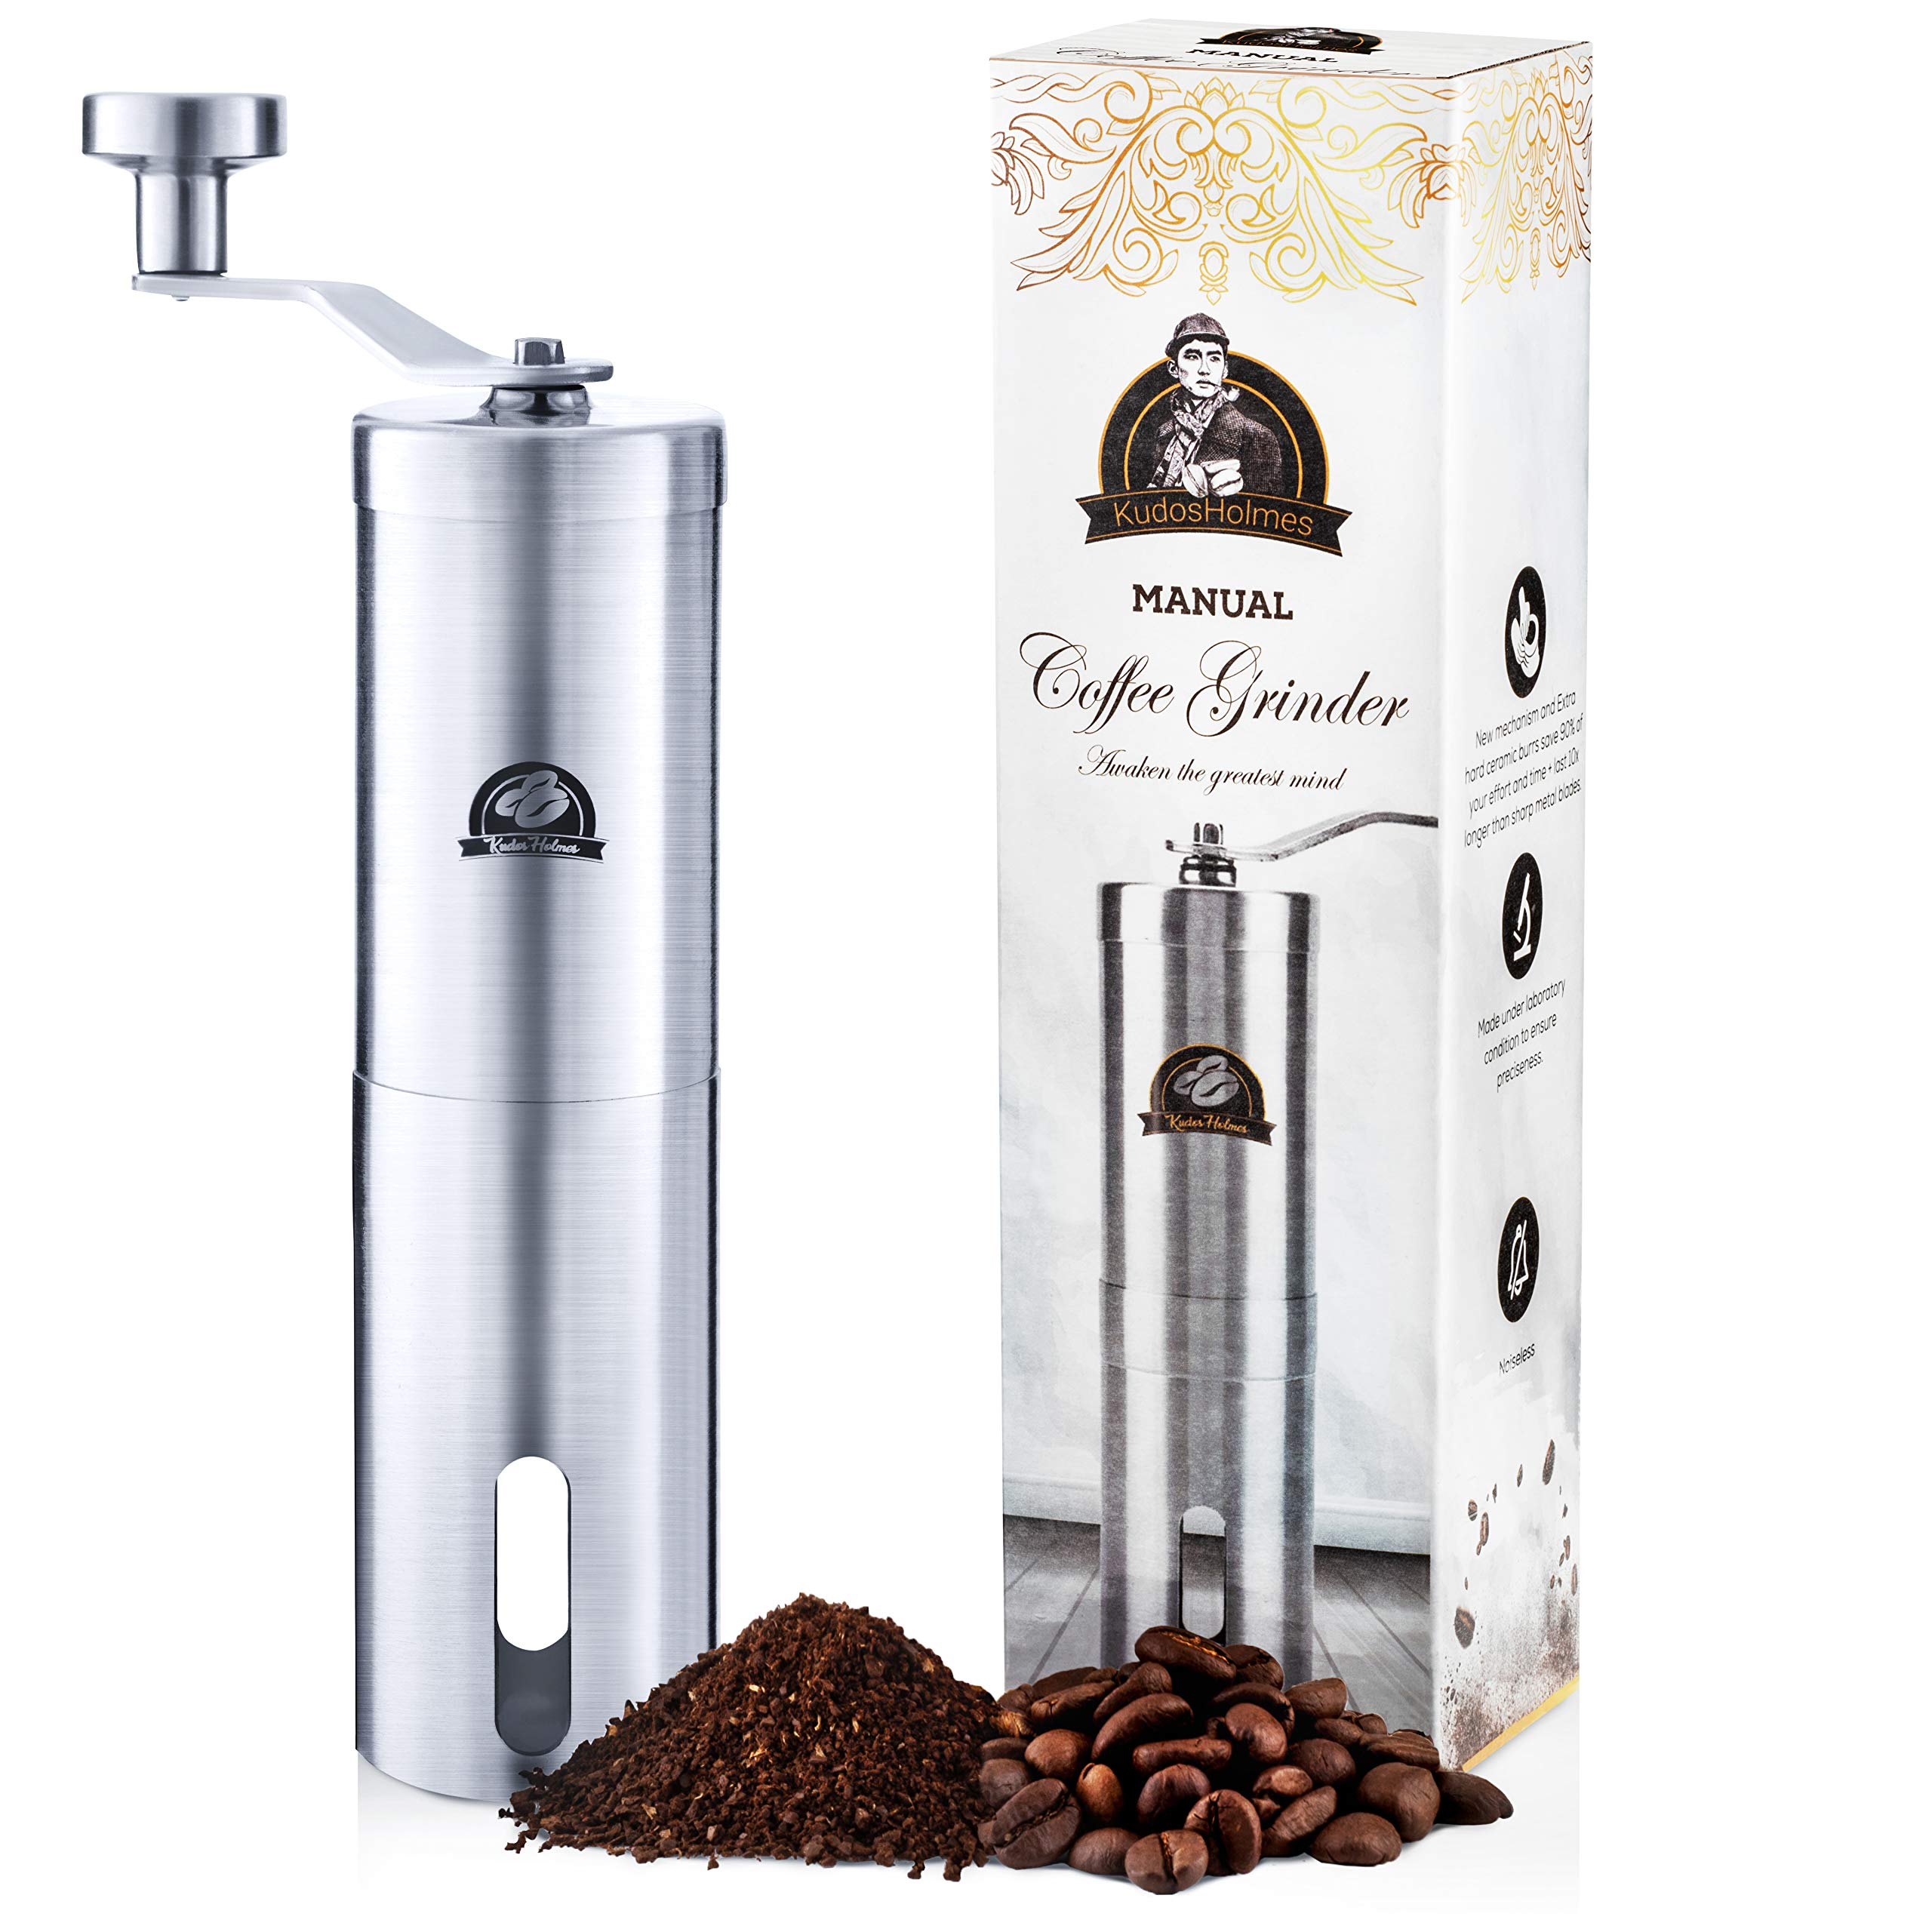 Manual Coffee Grinder by KudosHolmes - Portable Stainless Steel Design with 25 Adjustable Grind Selector Settings, Conical Ceramic Burr Mill with Quiet Grinding - Great for Camping, Travel, Picnics by KudosHolmes (Image #1)